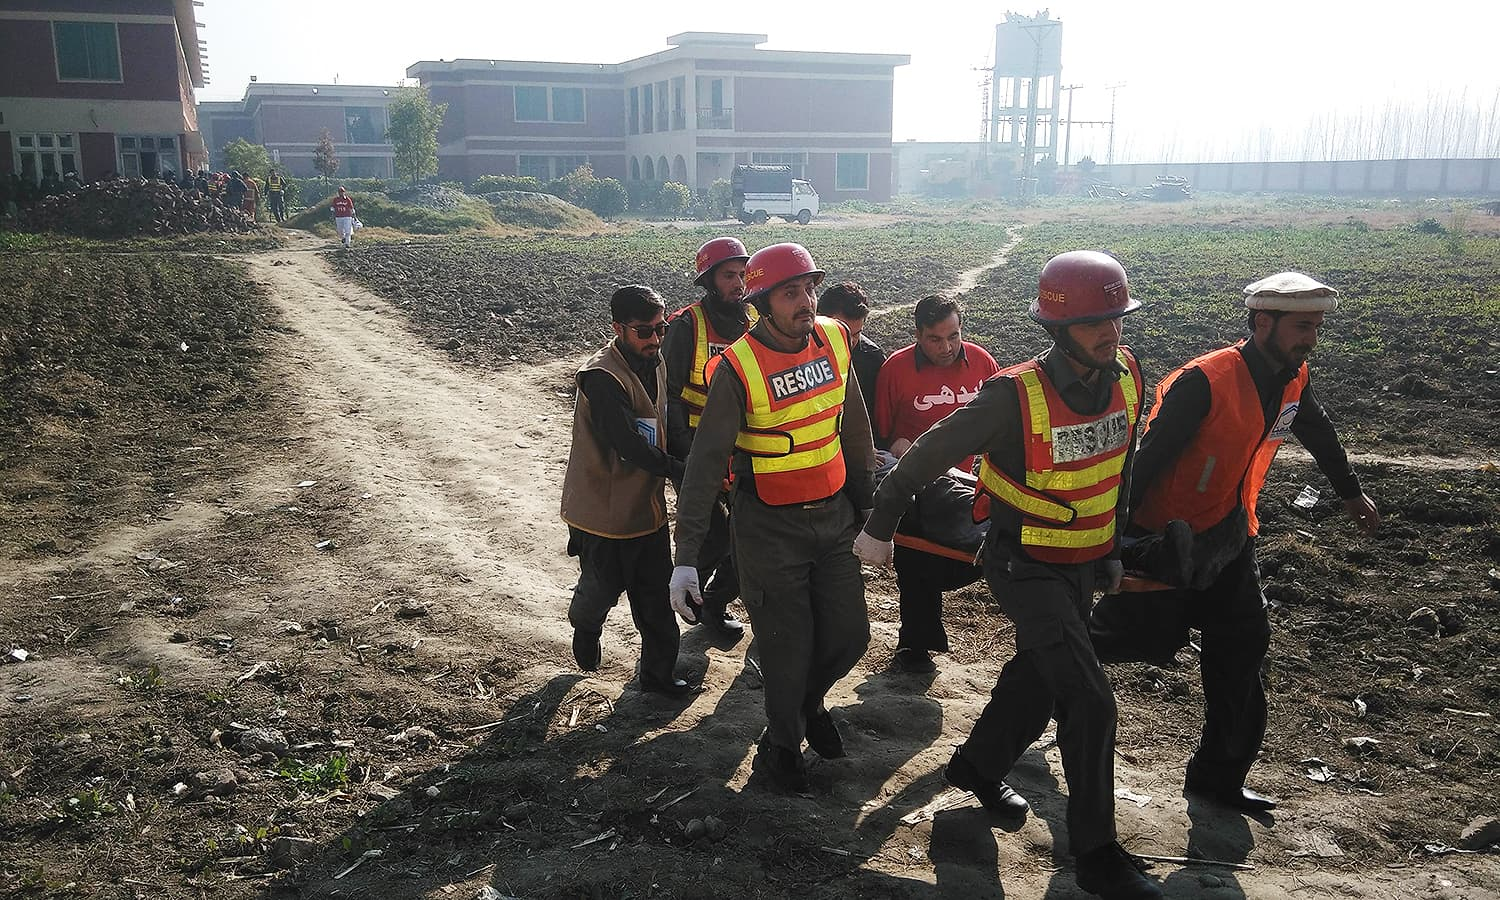 Rescuers shift an injured person outside the university. — AFP